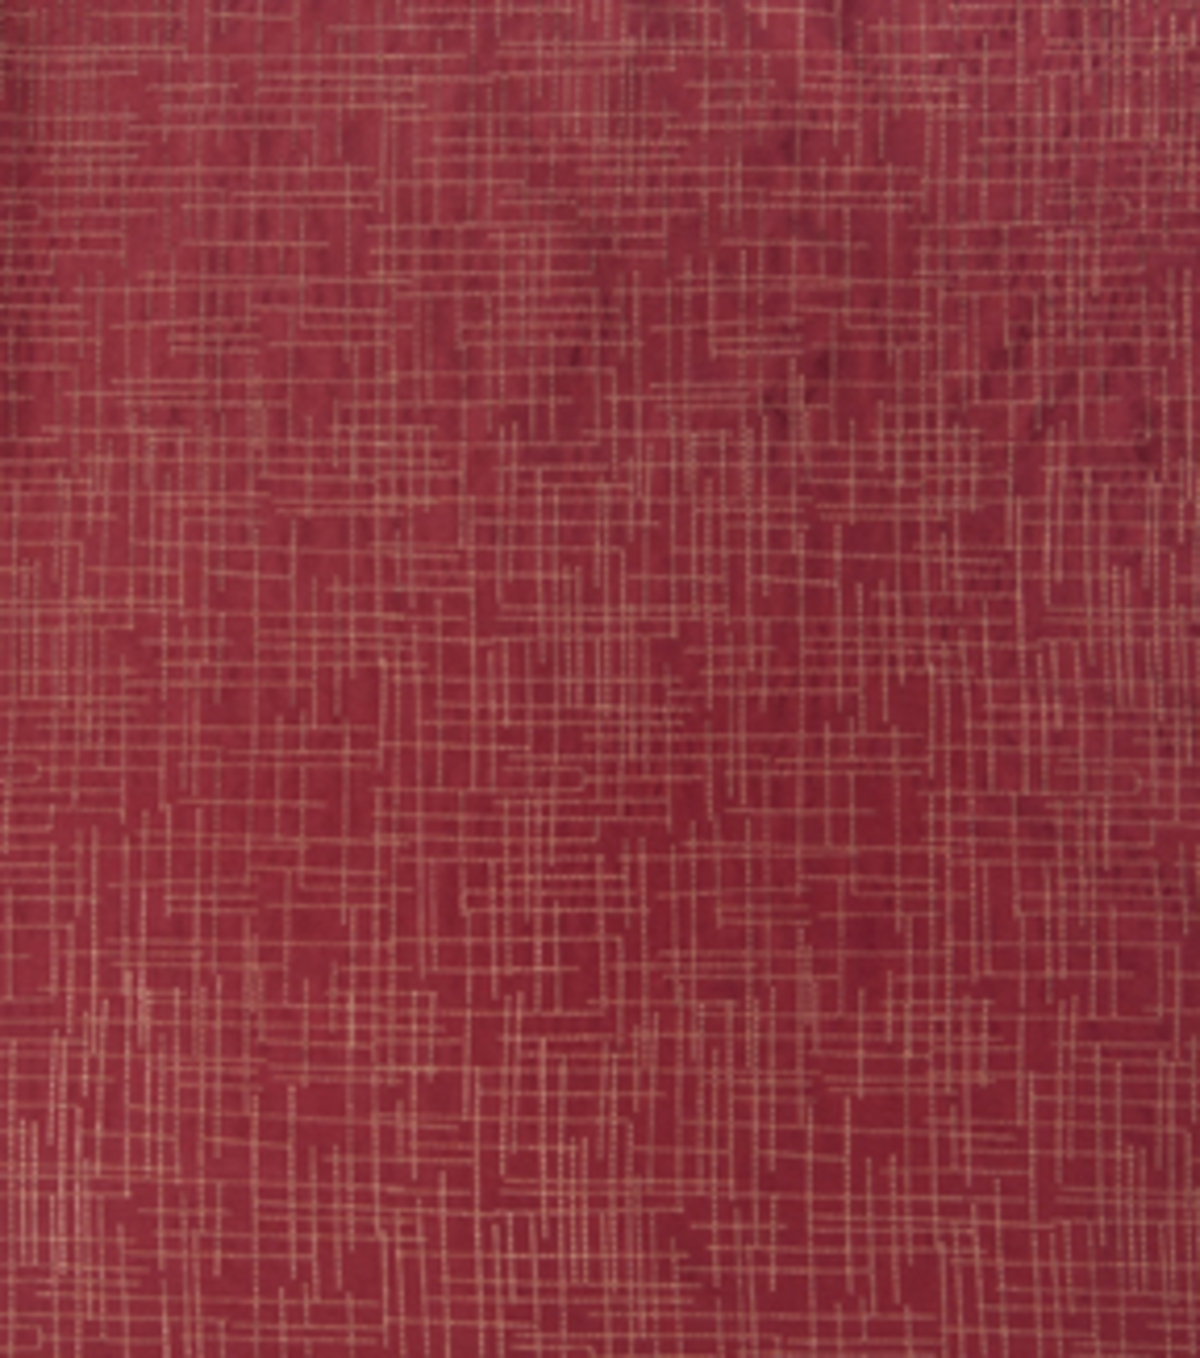 Home Decor 8\u0022x8\u0022 Fabric Swatch-Print Fabric Eaton Square Fox Hunt Cinnamon